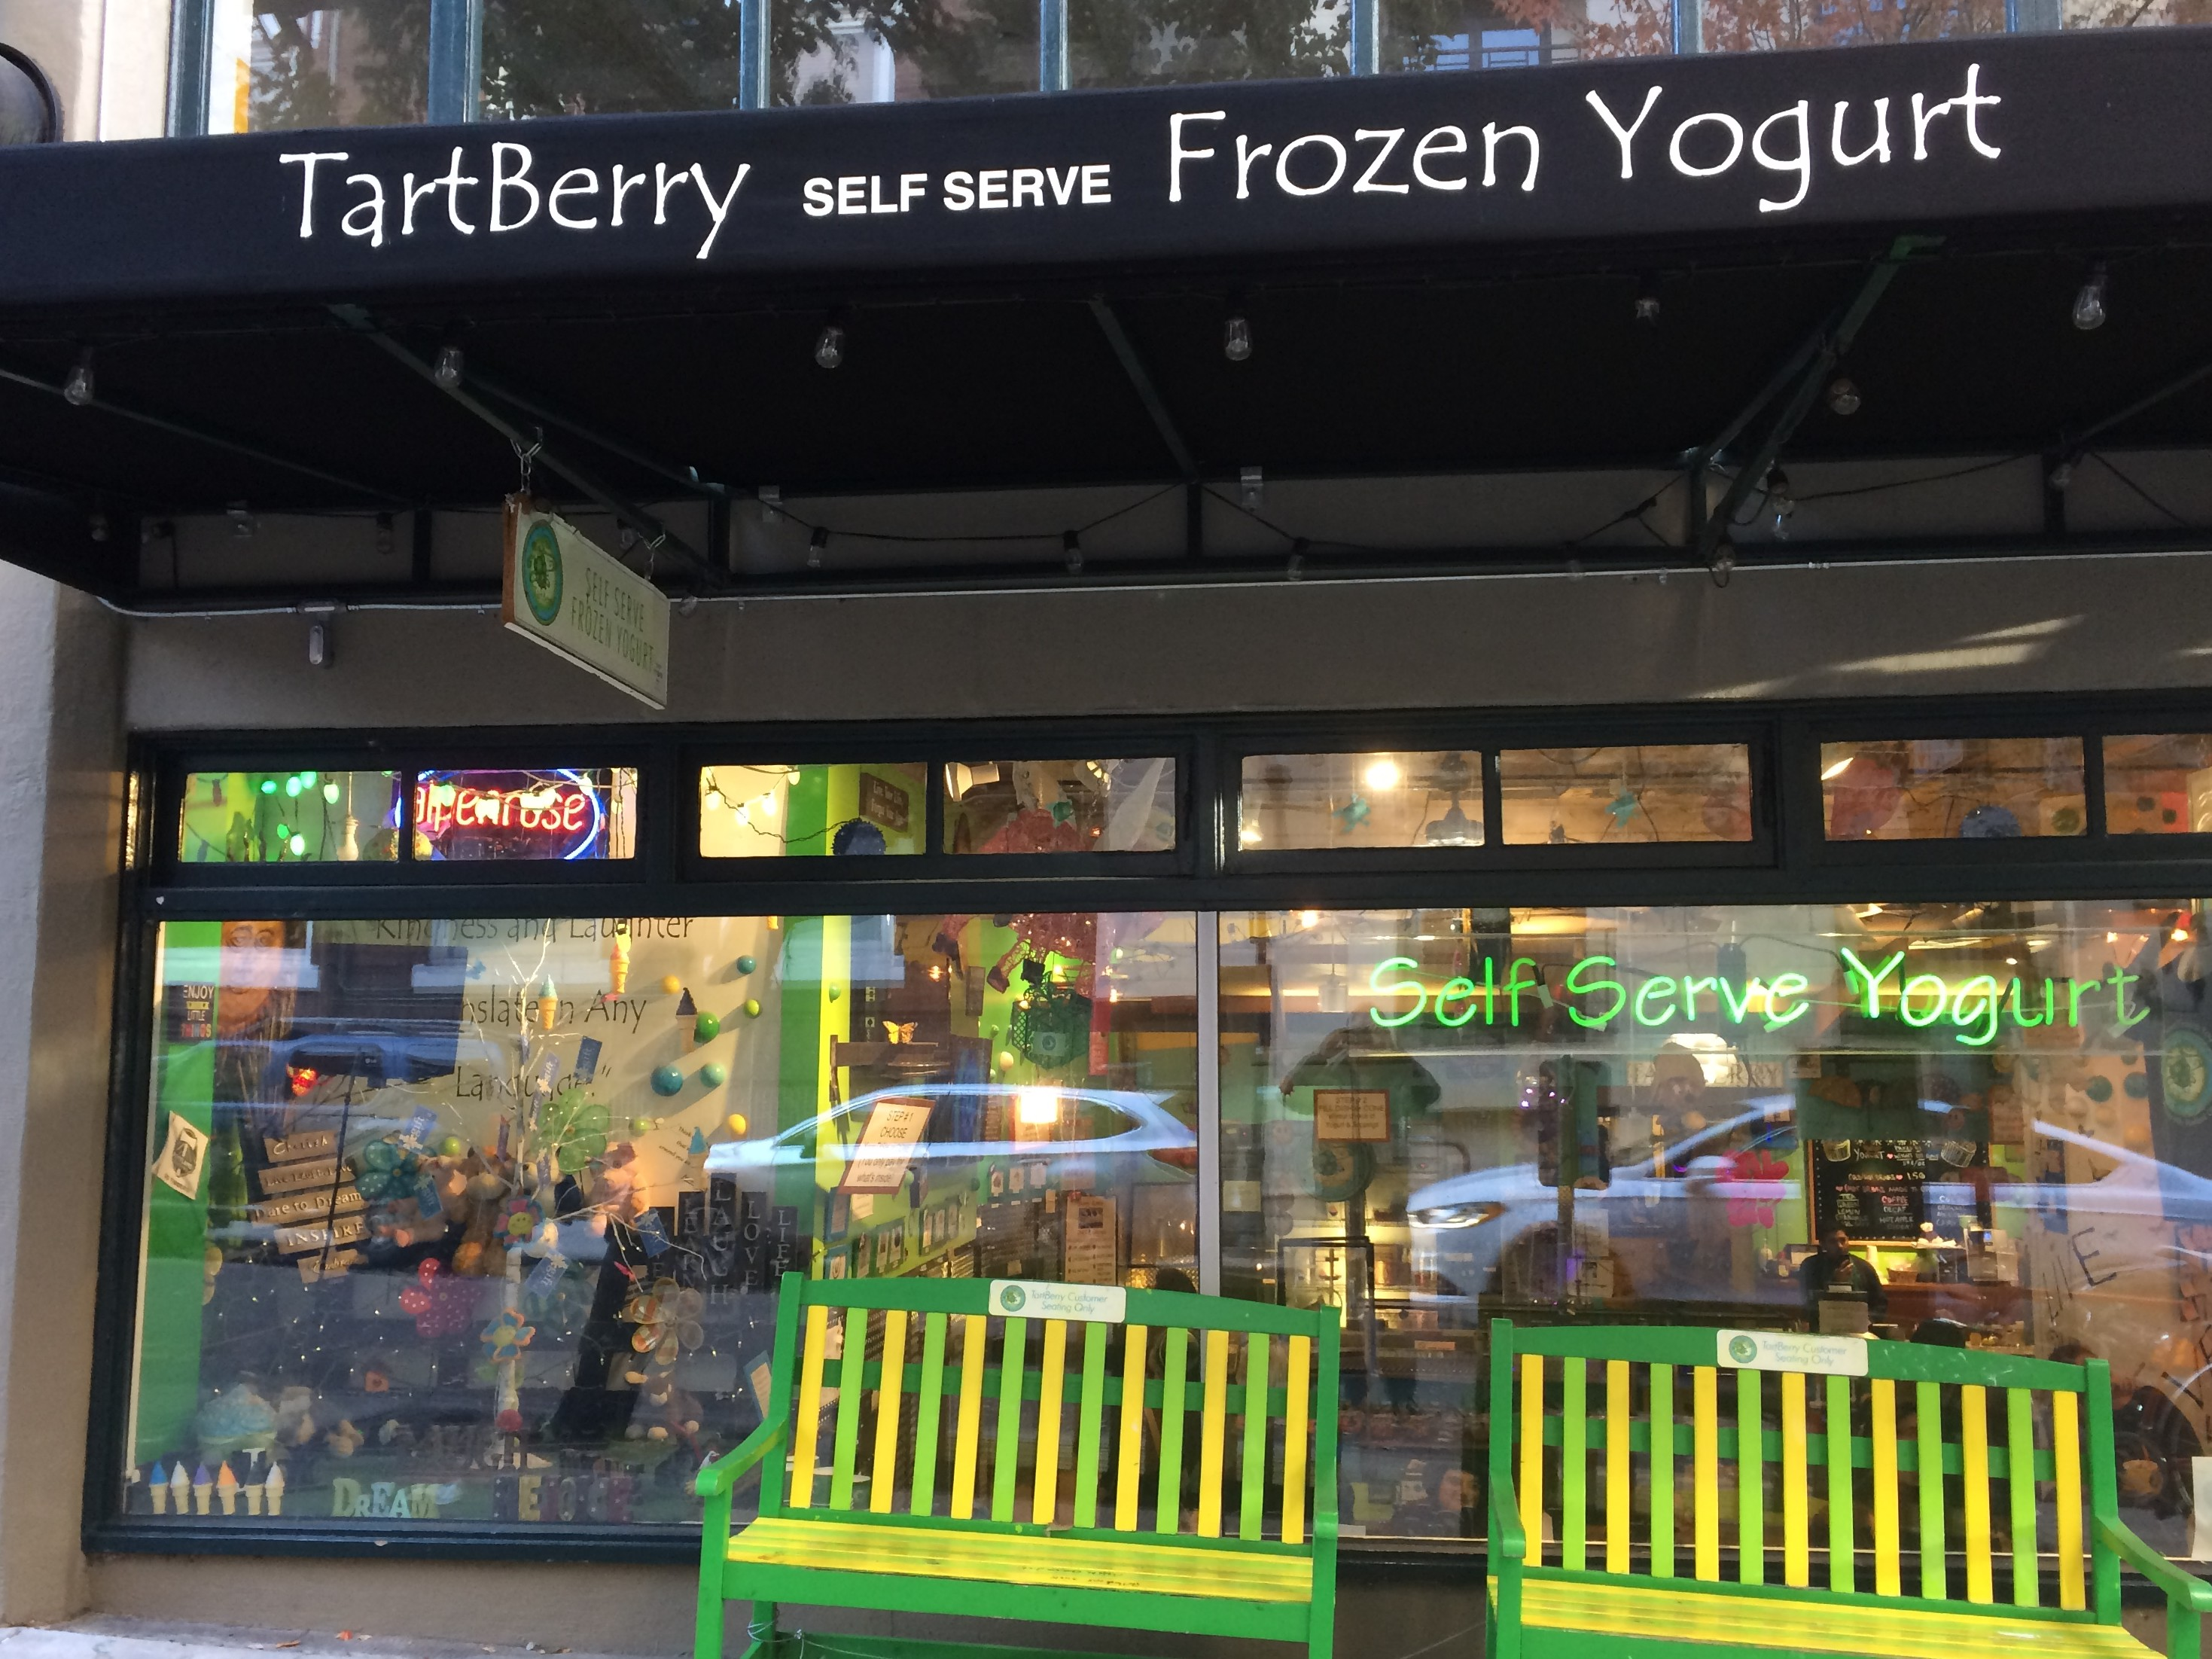 Exterior of Tartberry Frozen Yogurt